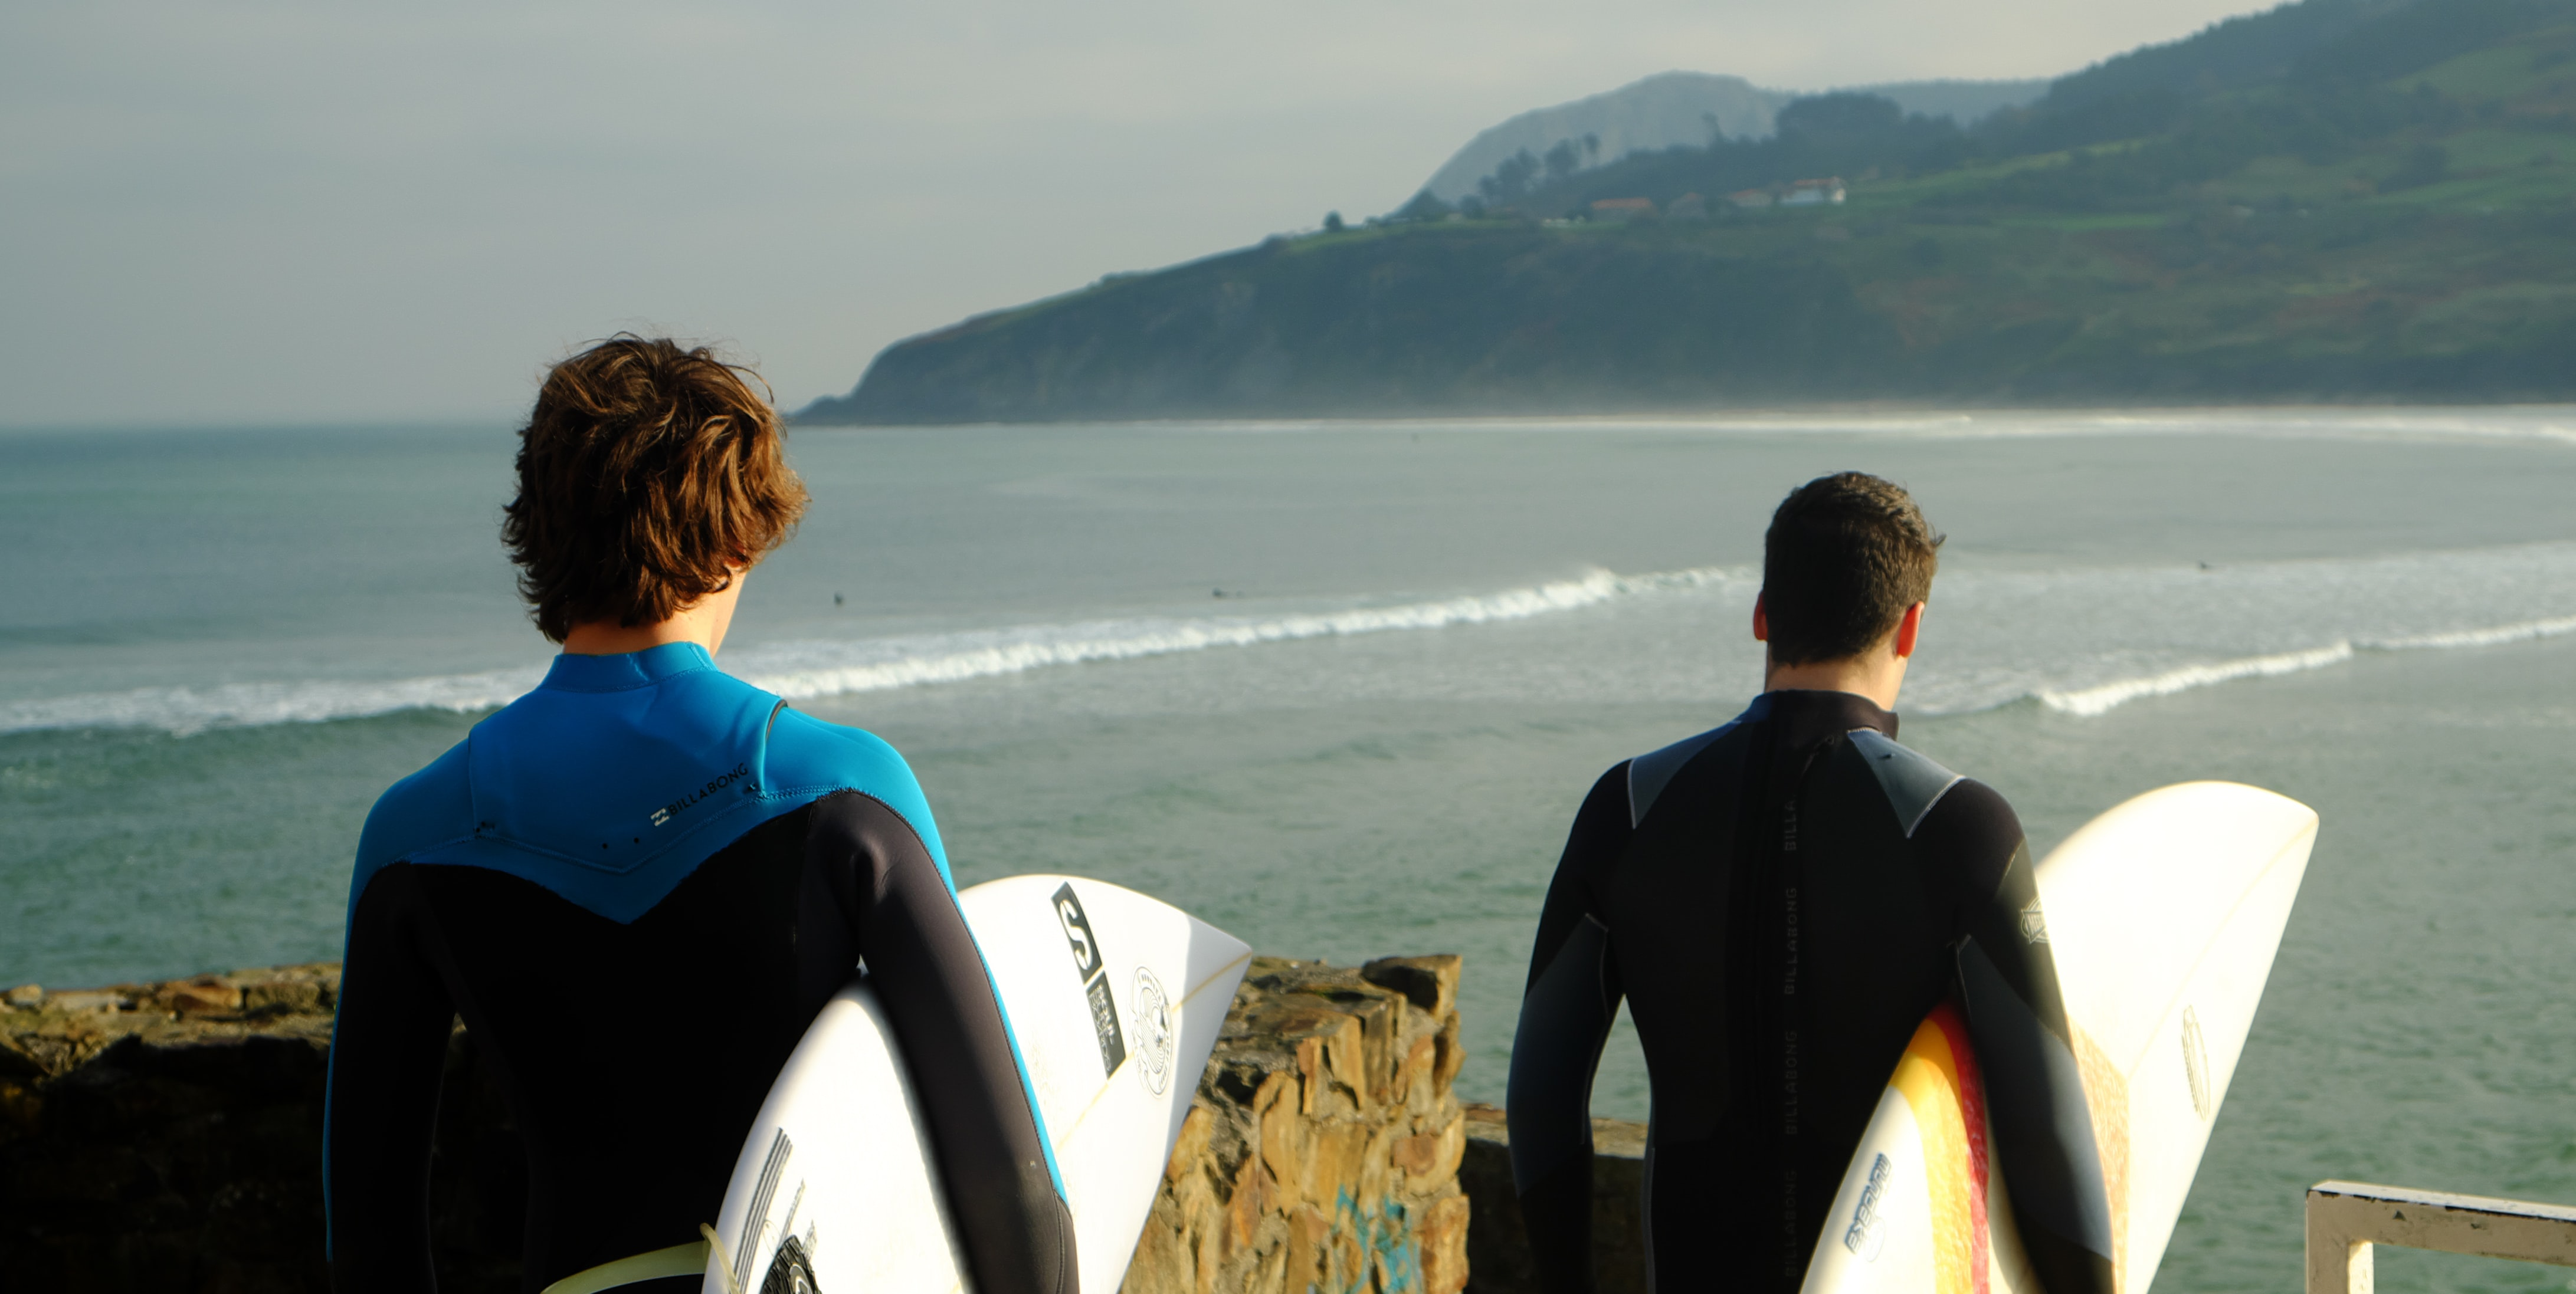 two male wearing wetsuits holding surfboards standing nearby each other on top of hill with view of beach below